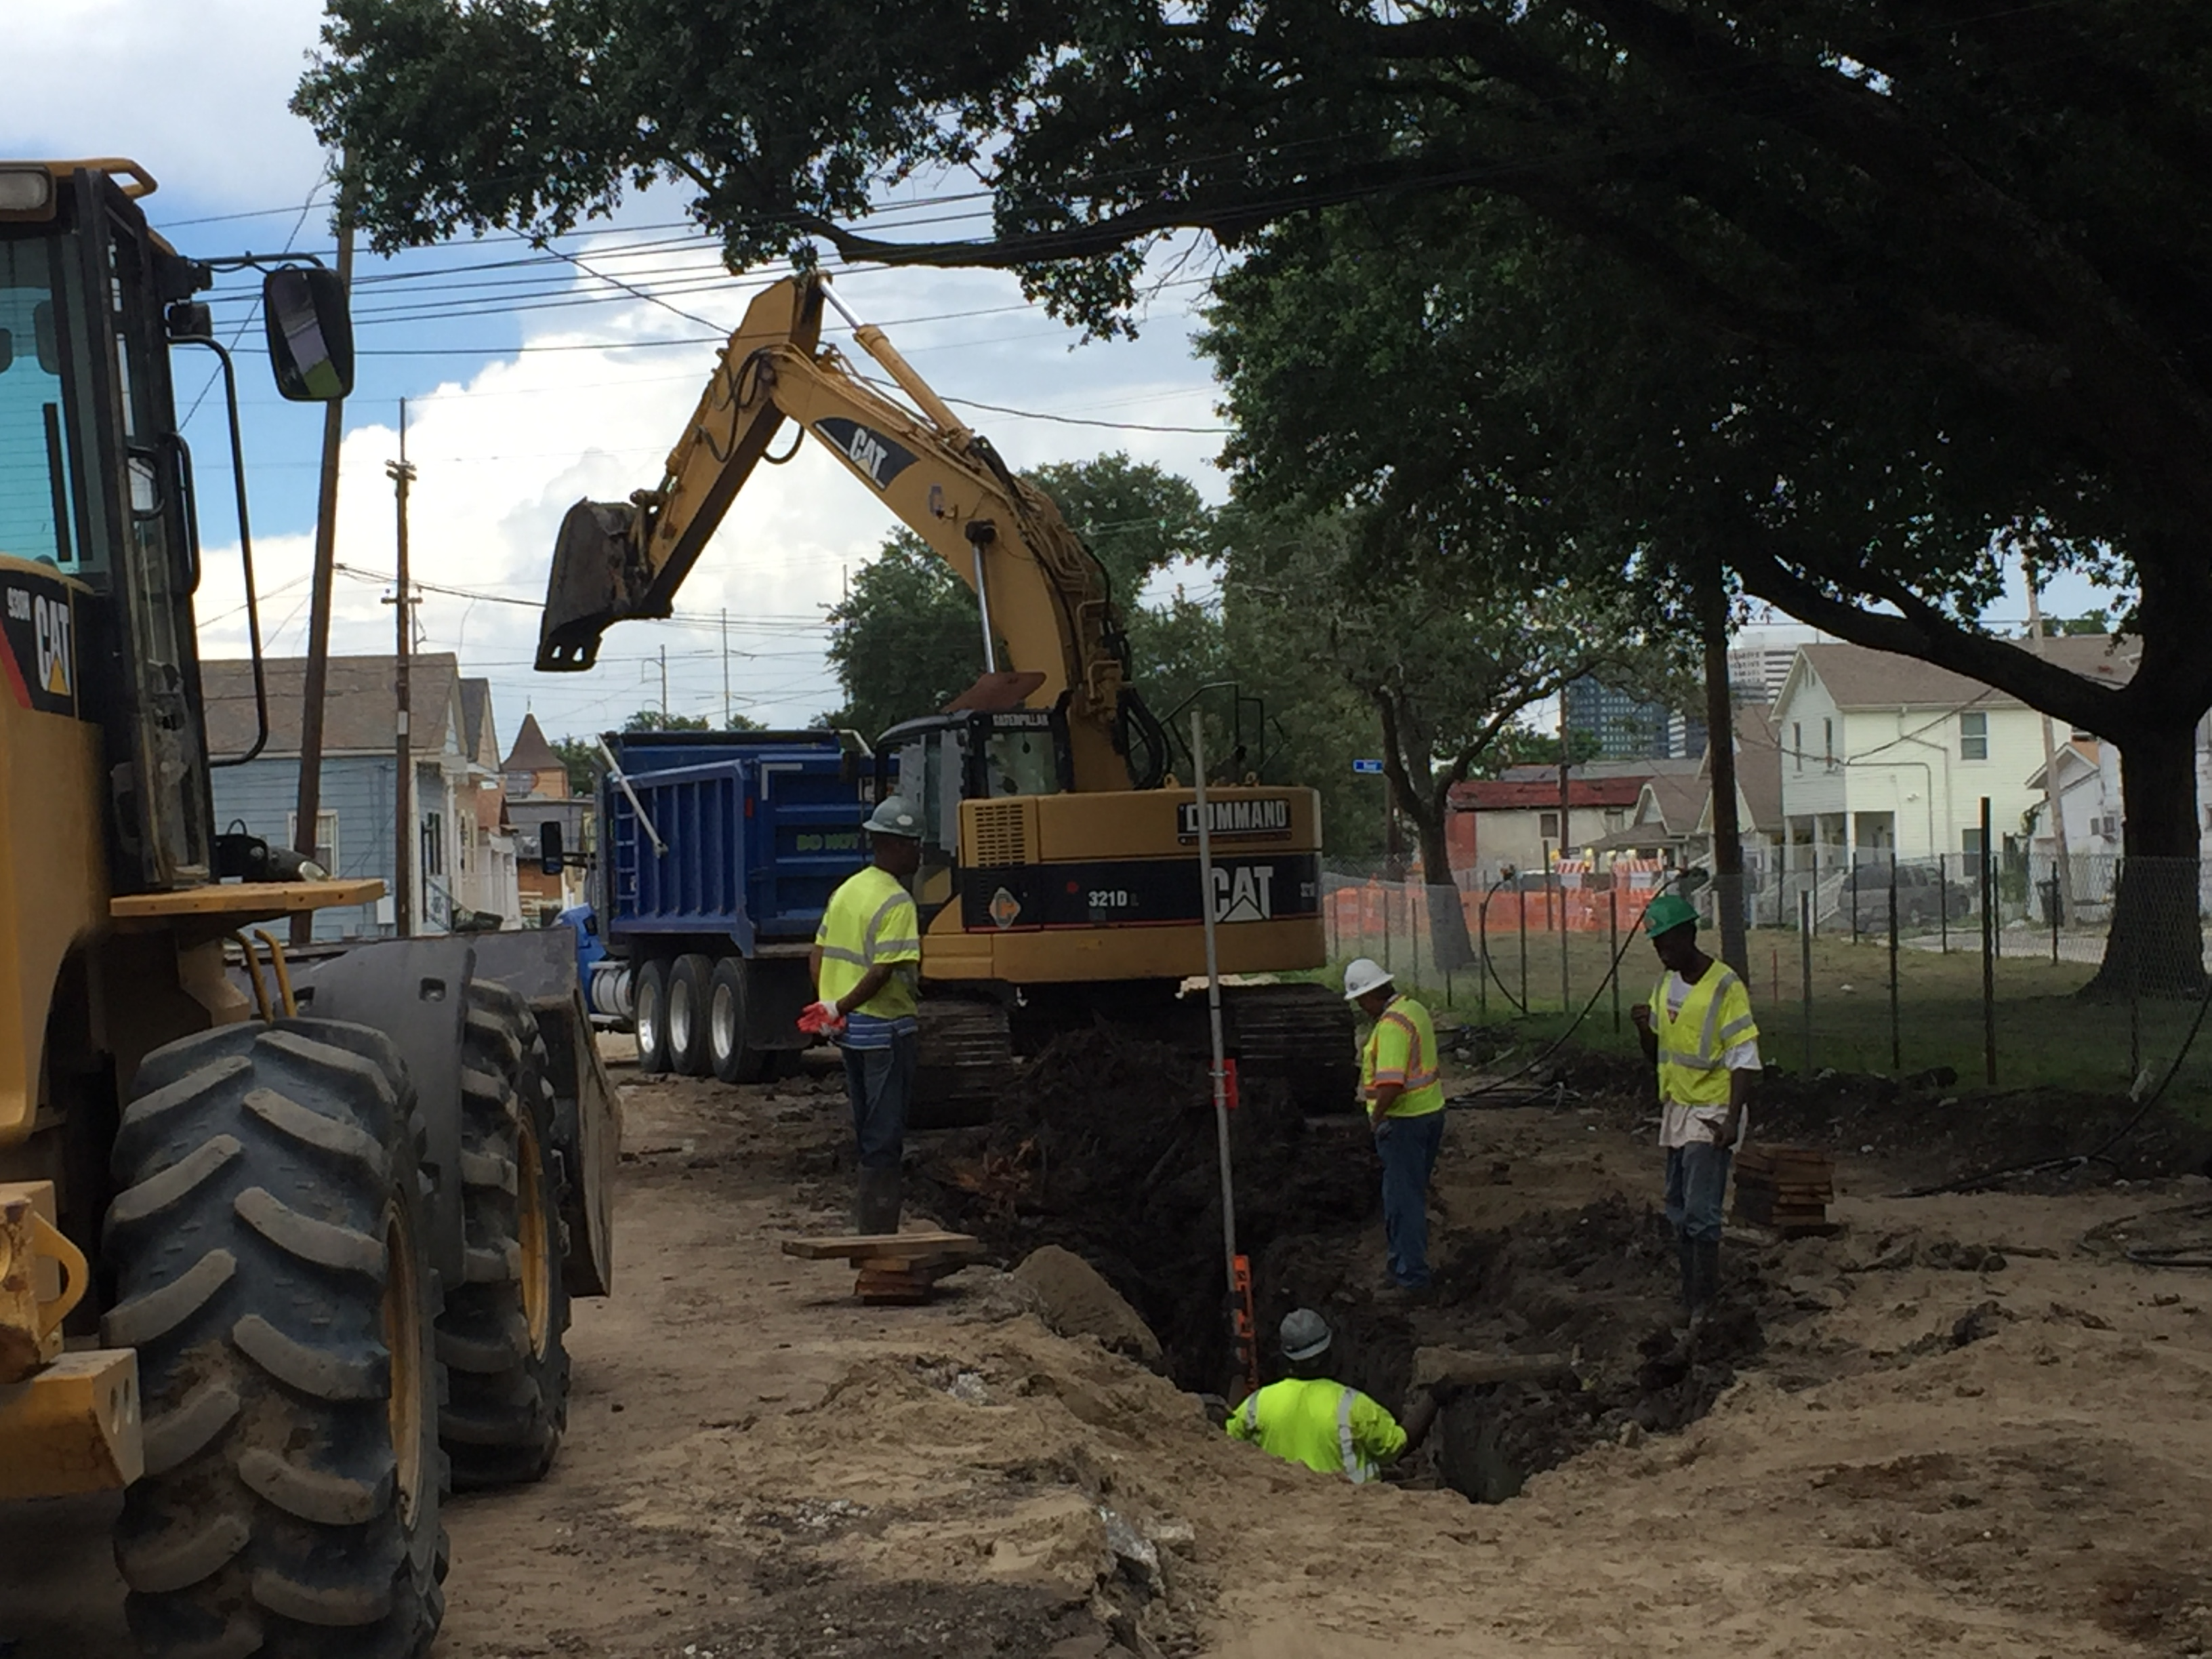 S. Galvez St. reconstruction project progressing on schedule